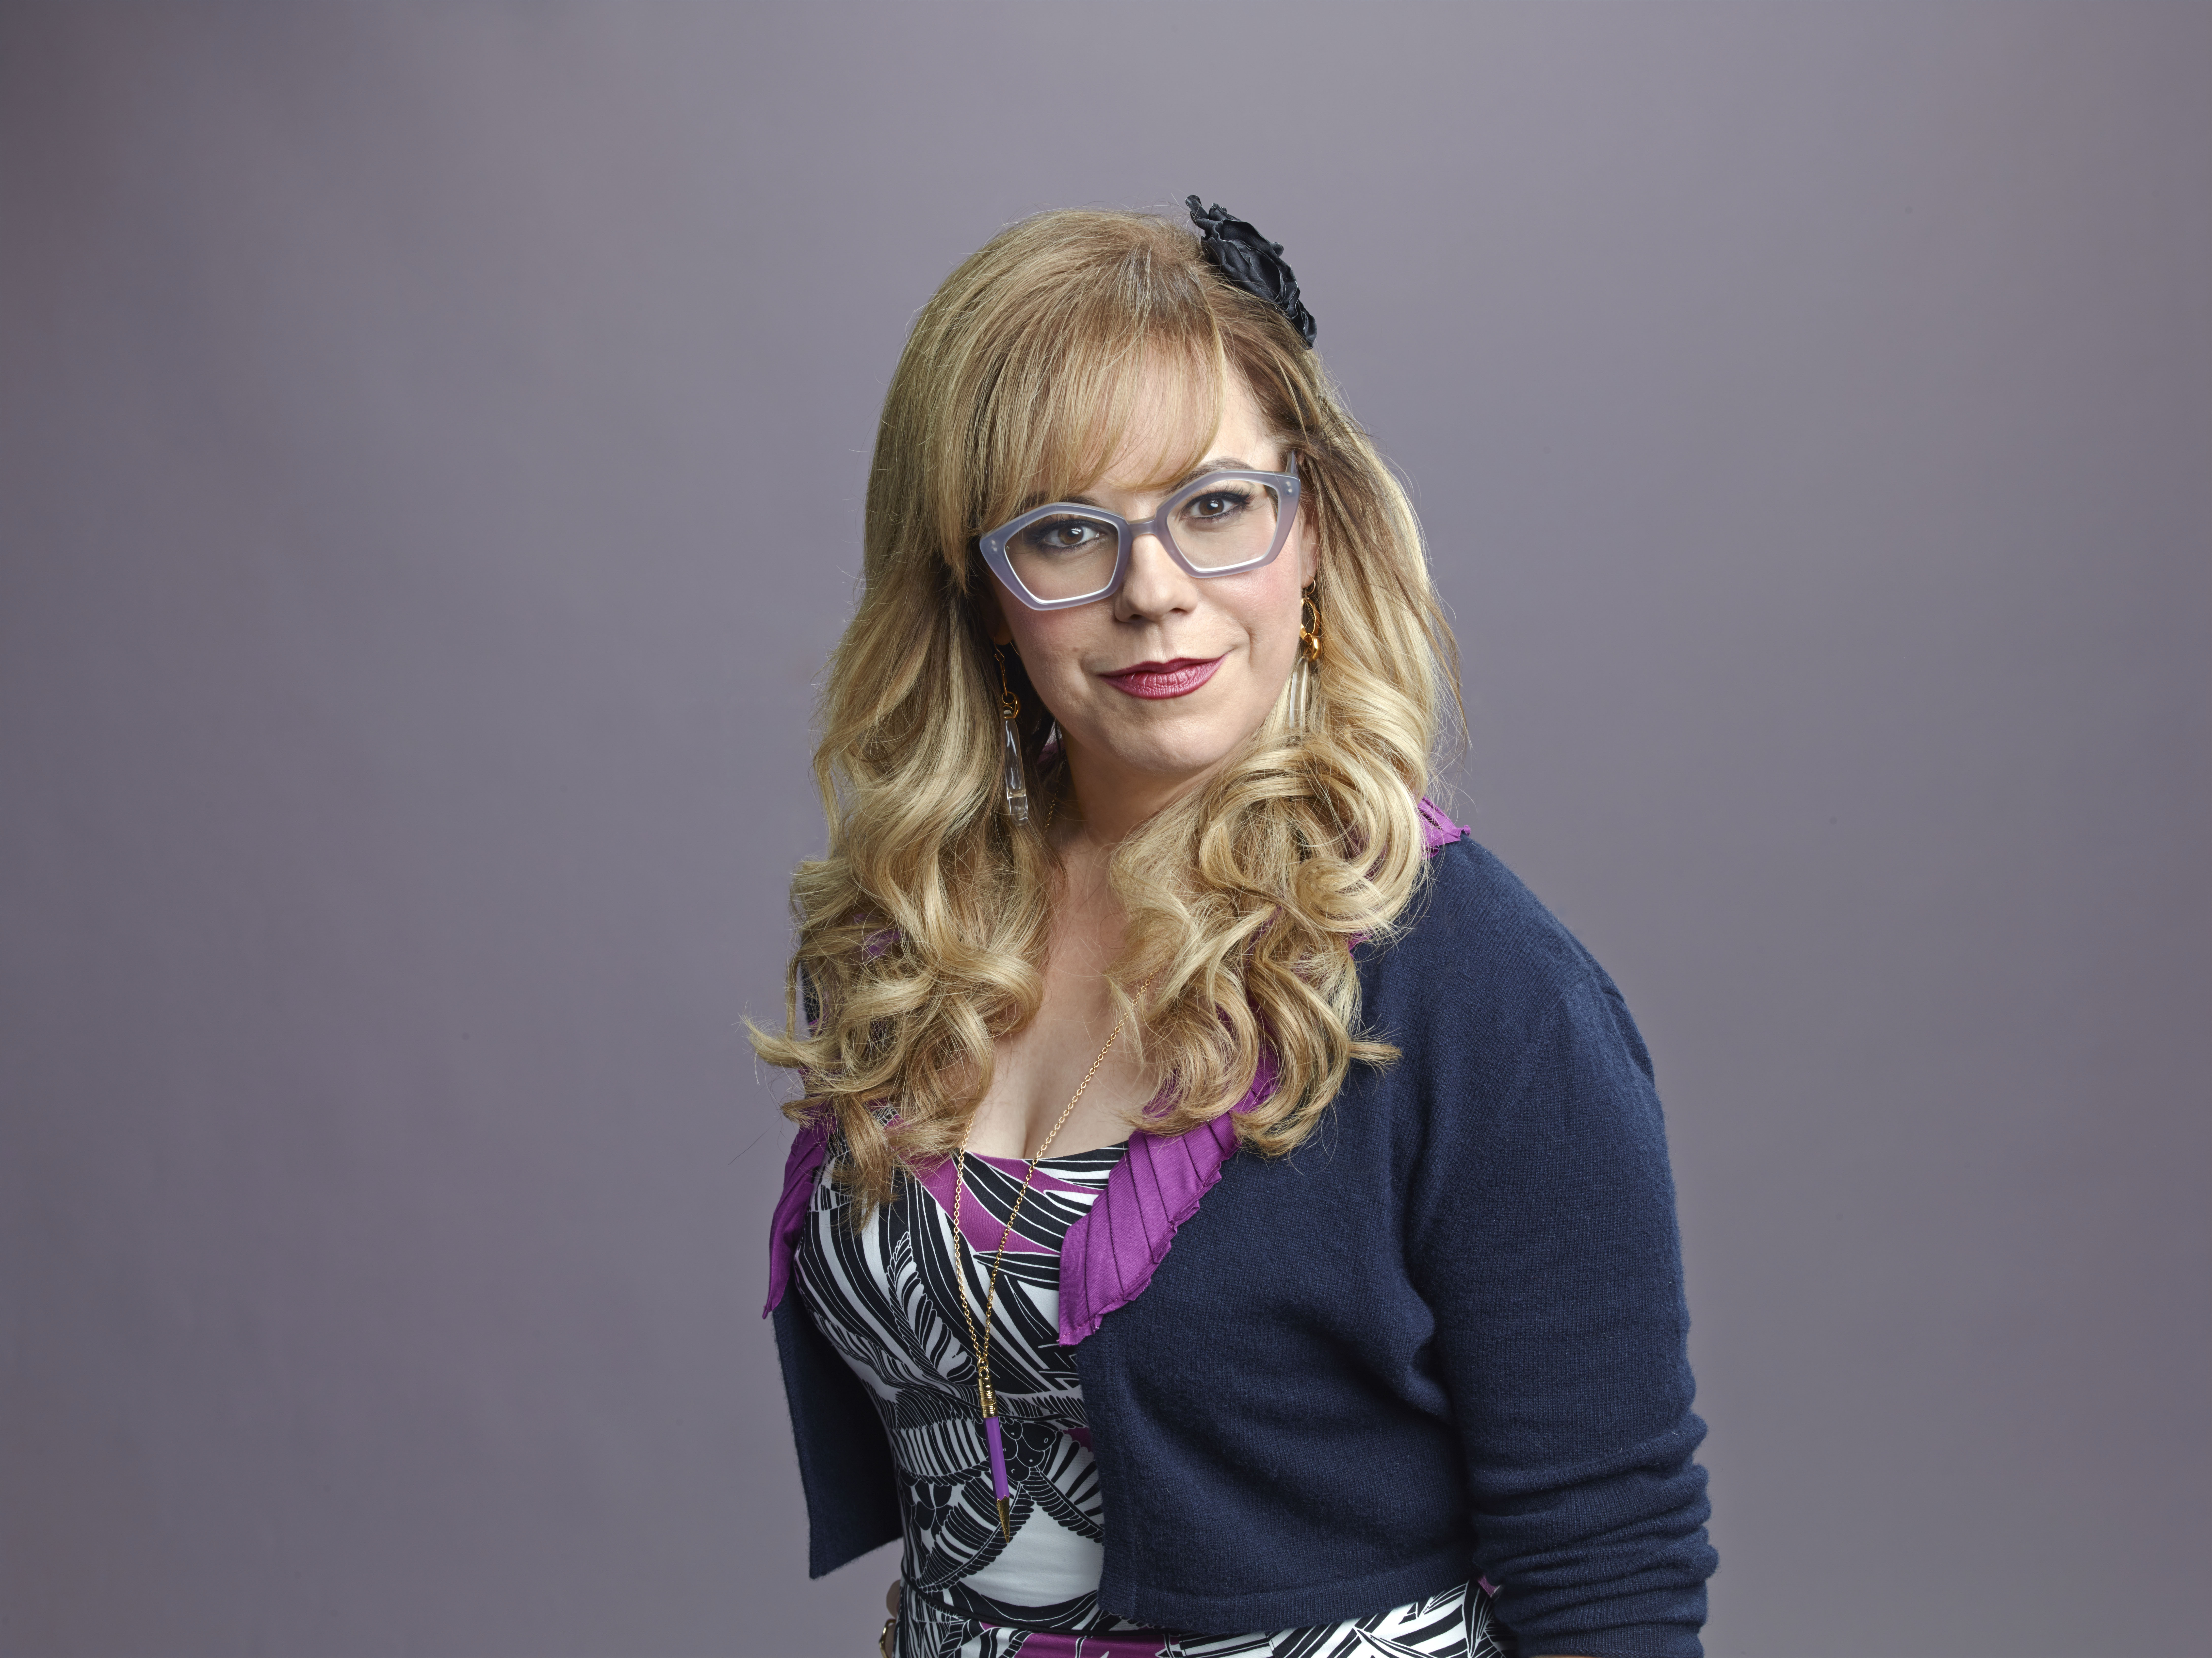 Criminal Minds Star Kirsten Vangsness Embraces Her Inner